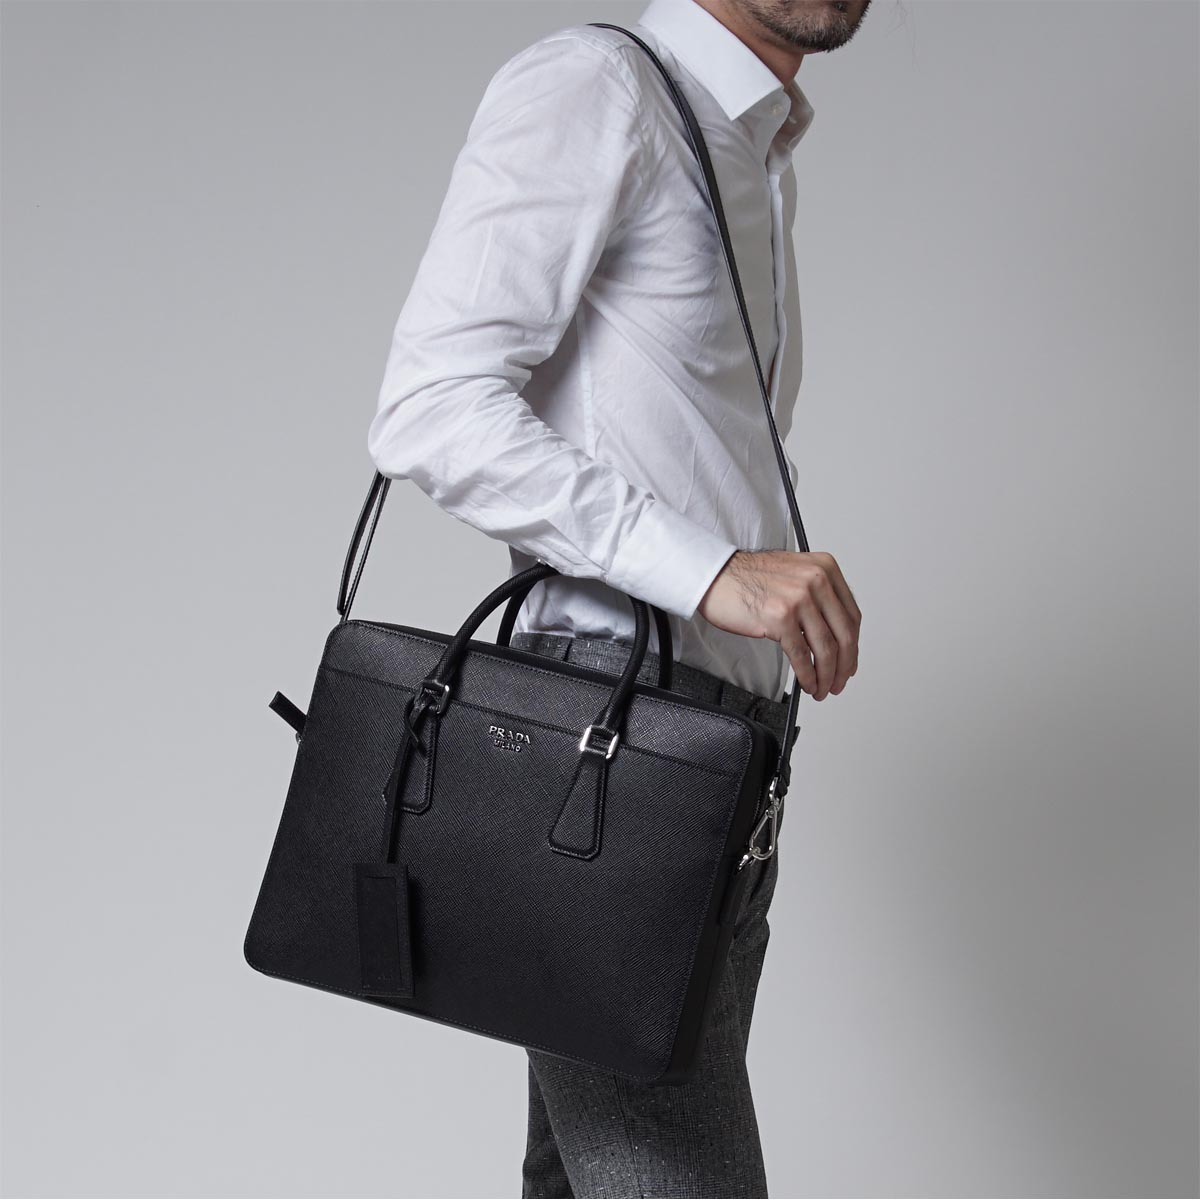 Prada Saffiano with Strap | Prada Briefcase | Prada Weekender Bag